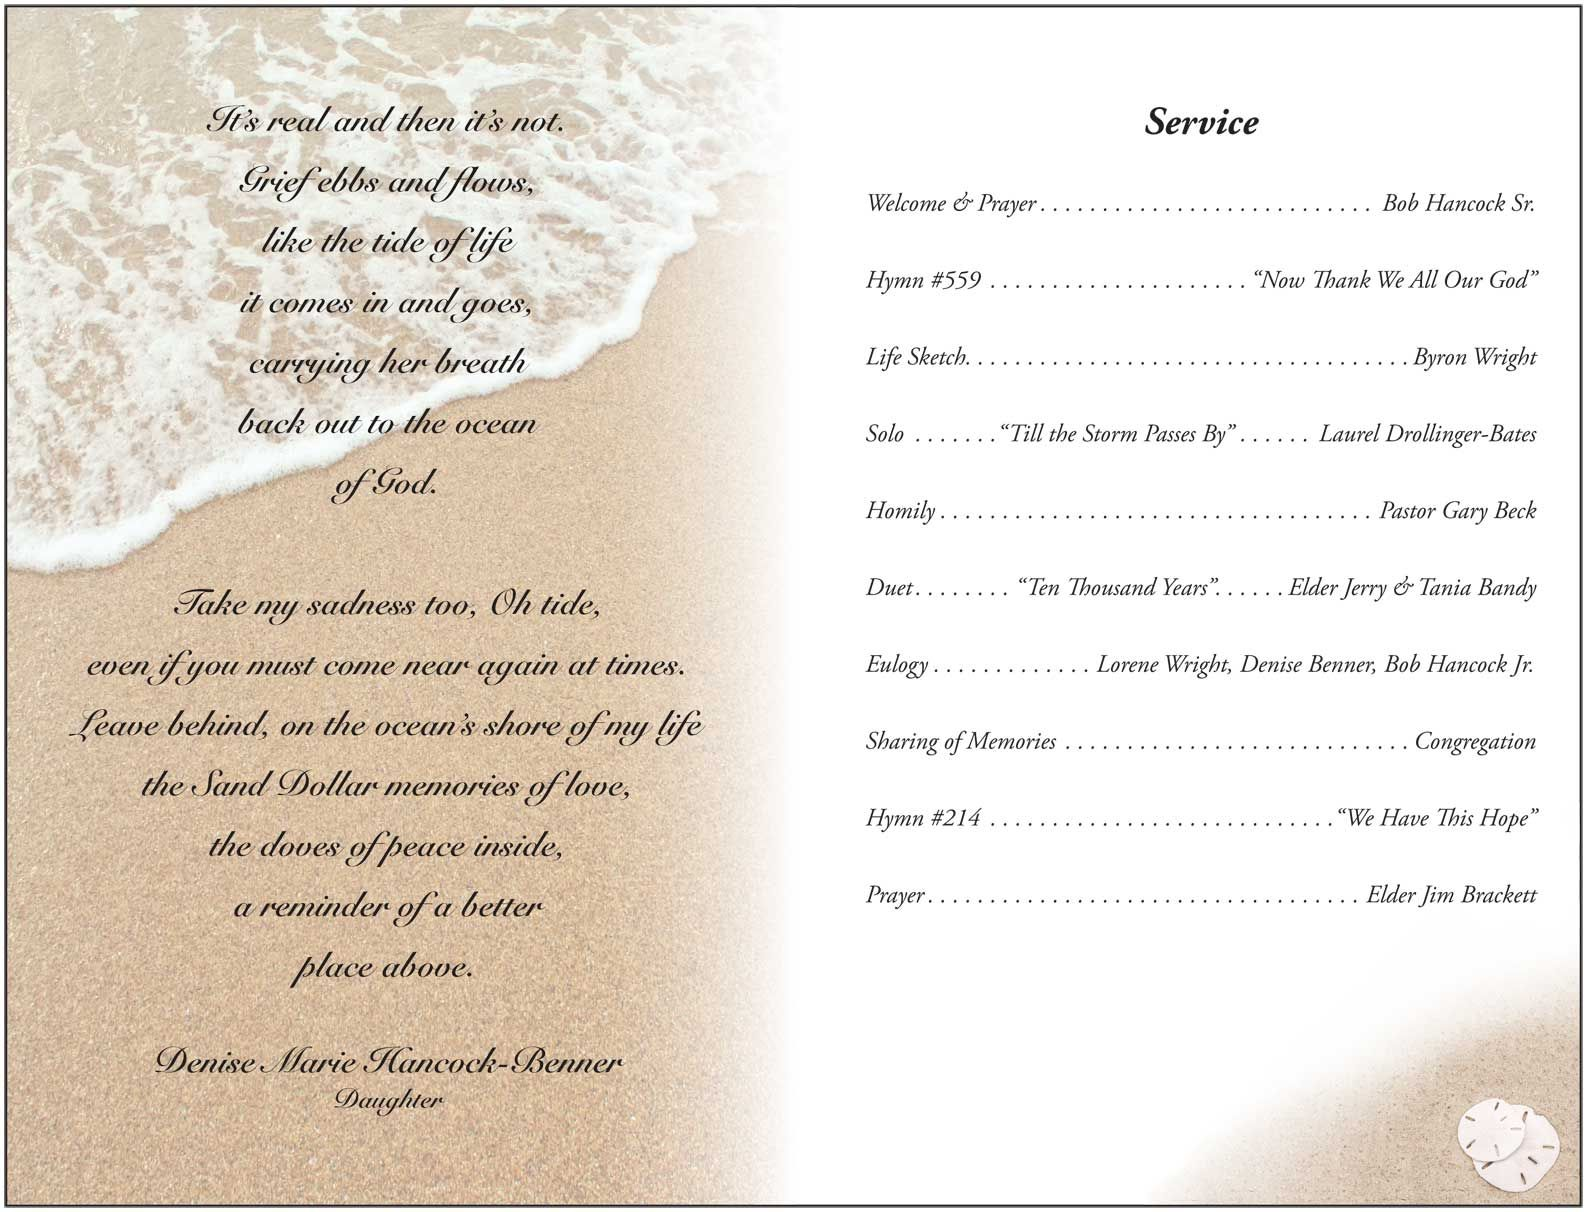 Memorial Service Programs Sample | Janet Hancocku0027s Funeral Program Inside  Funeral Service Template Word